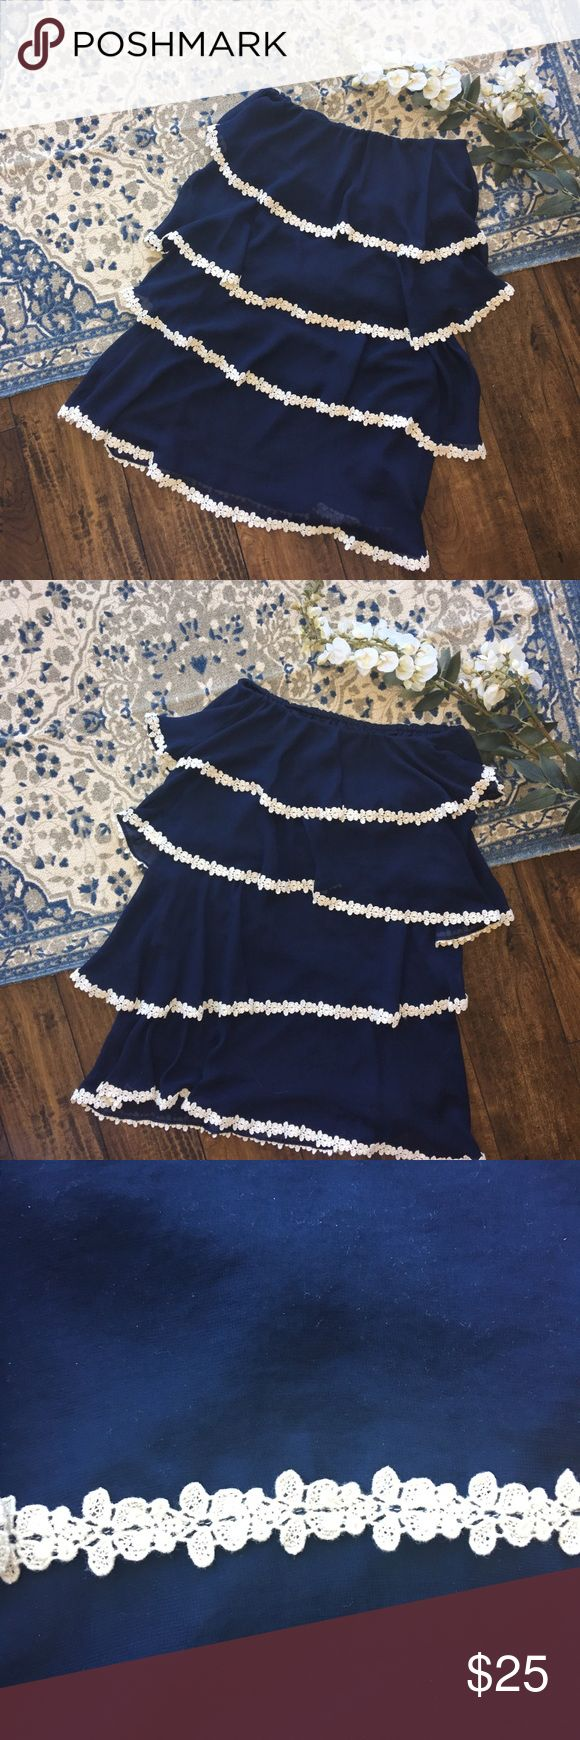 Navy Judith March Tier Strapless Dress Size Medium Navy Judith March Tier Strapless Dress. Perfect for spring! It is lined and has 4 tiers. It's worn but in excellent condition. See picture for material. Dress is 26 1/2 inches long. Judith March Dresses Strapless